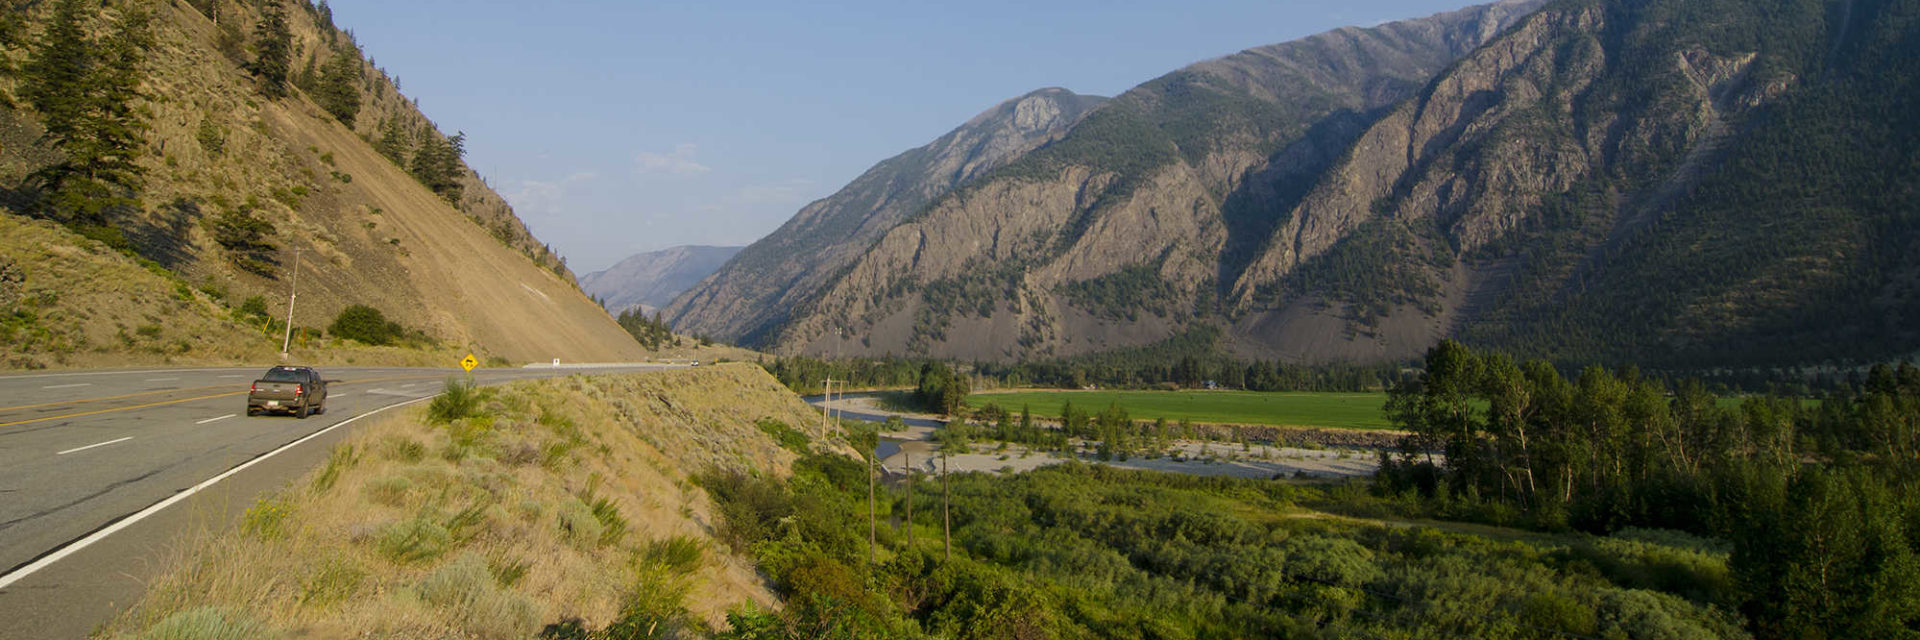 Motorcycle Touring the Similkameen